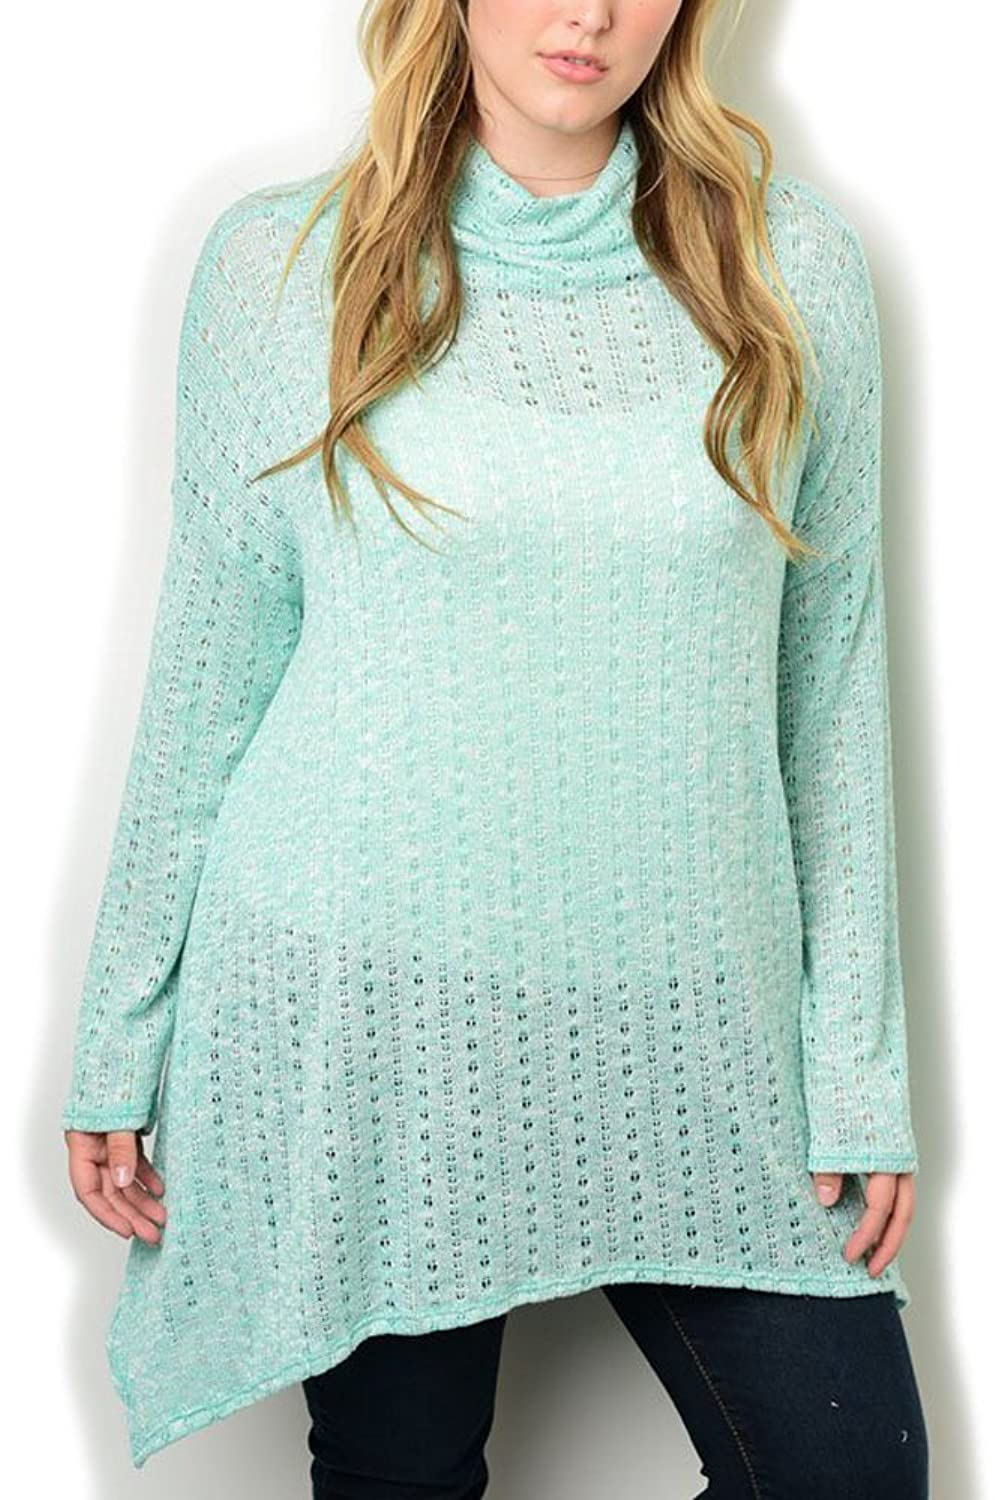 DHStyles Women's Plus Size Knit Cowl Neck Tunic Sweater Top